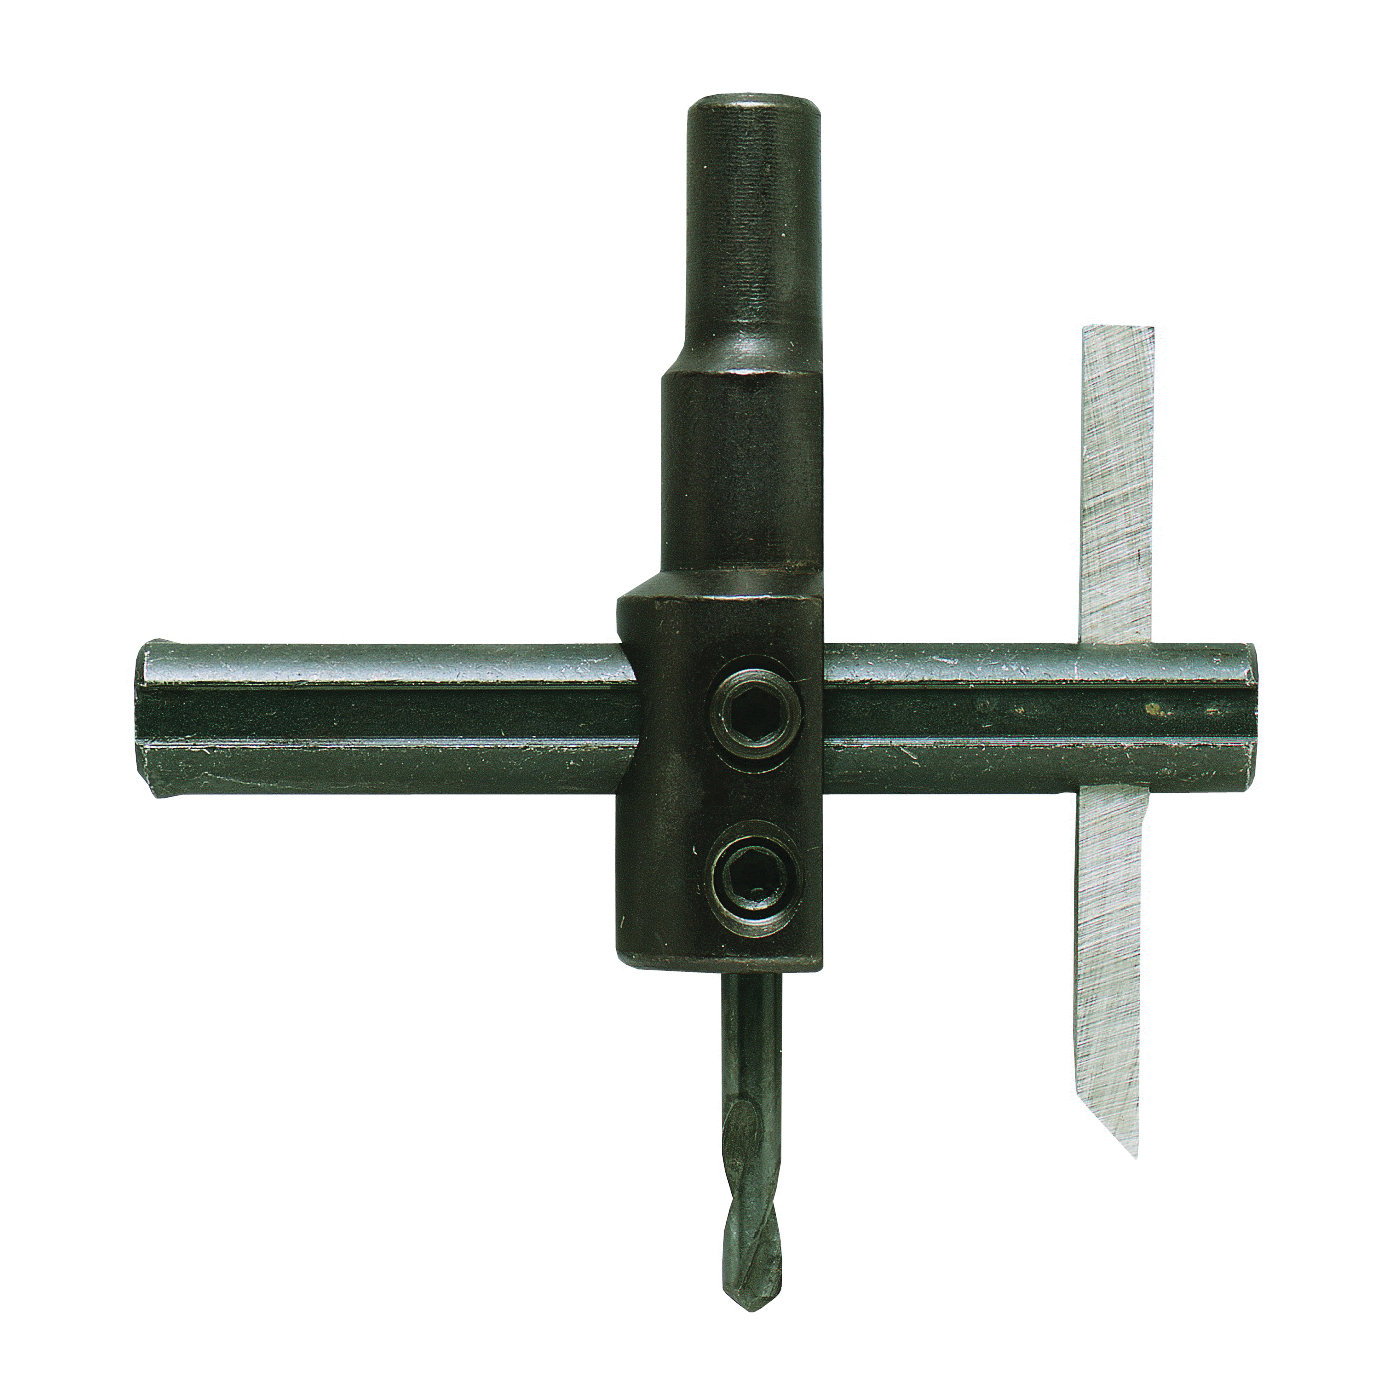 Picture of GENERAL 4 Circle Cutter, 7/8 to 4 in Dia Cutting, Steel